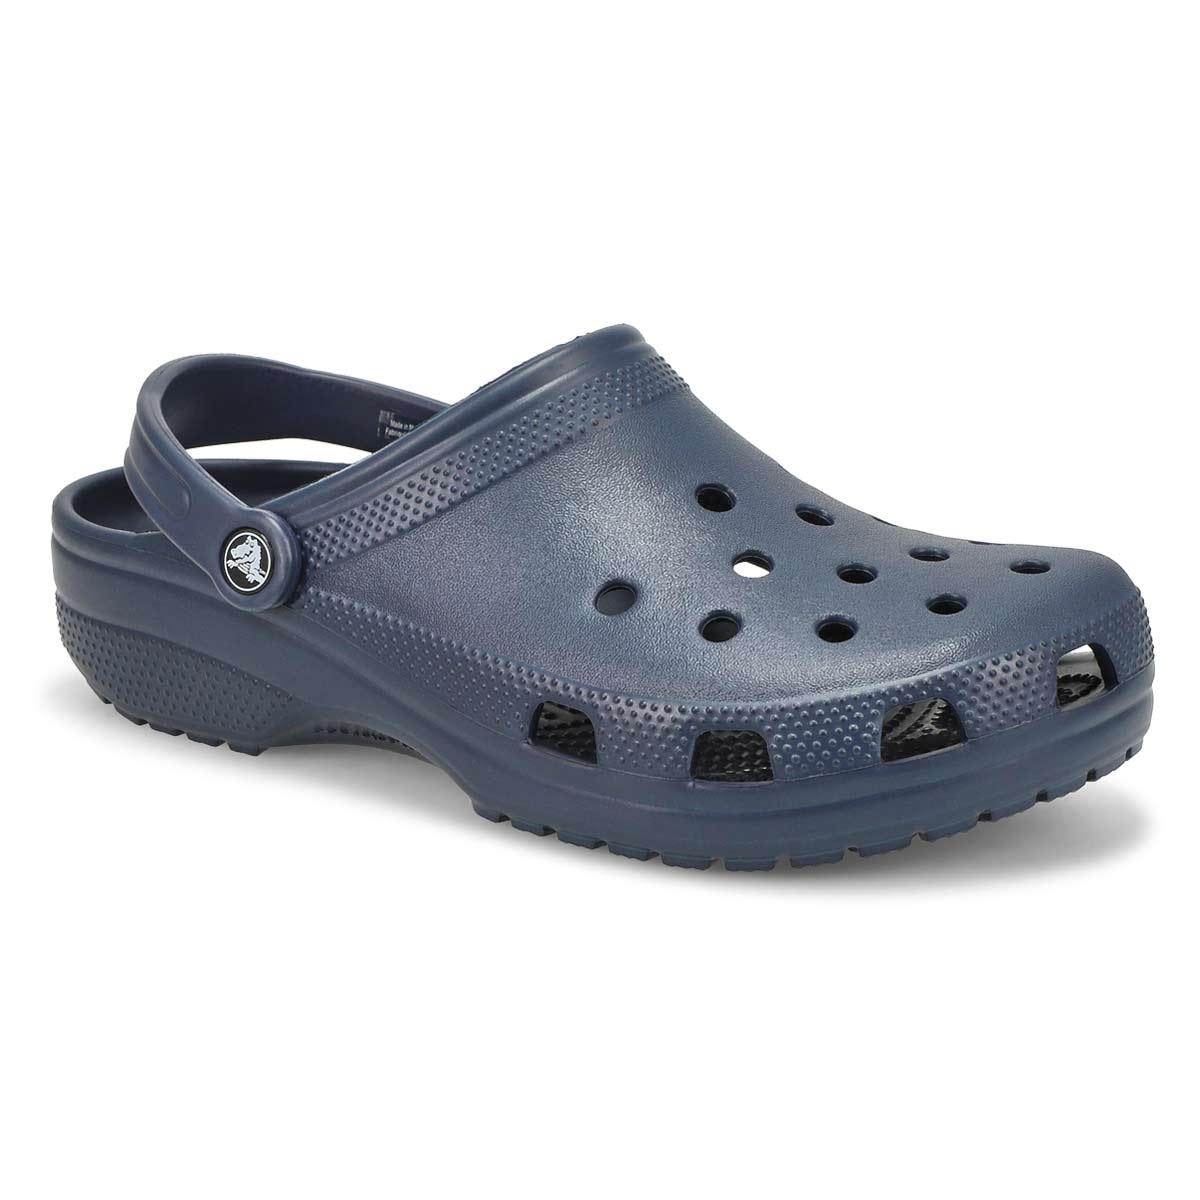 Men's CLASSIC navy comfort clogs